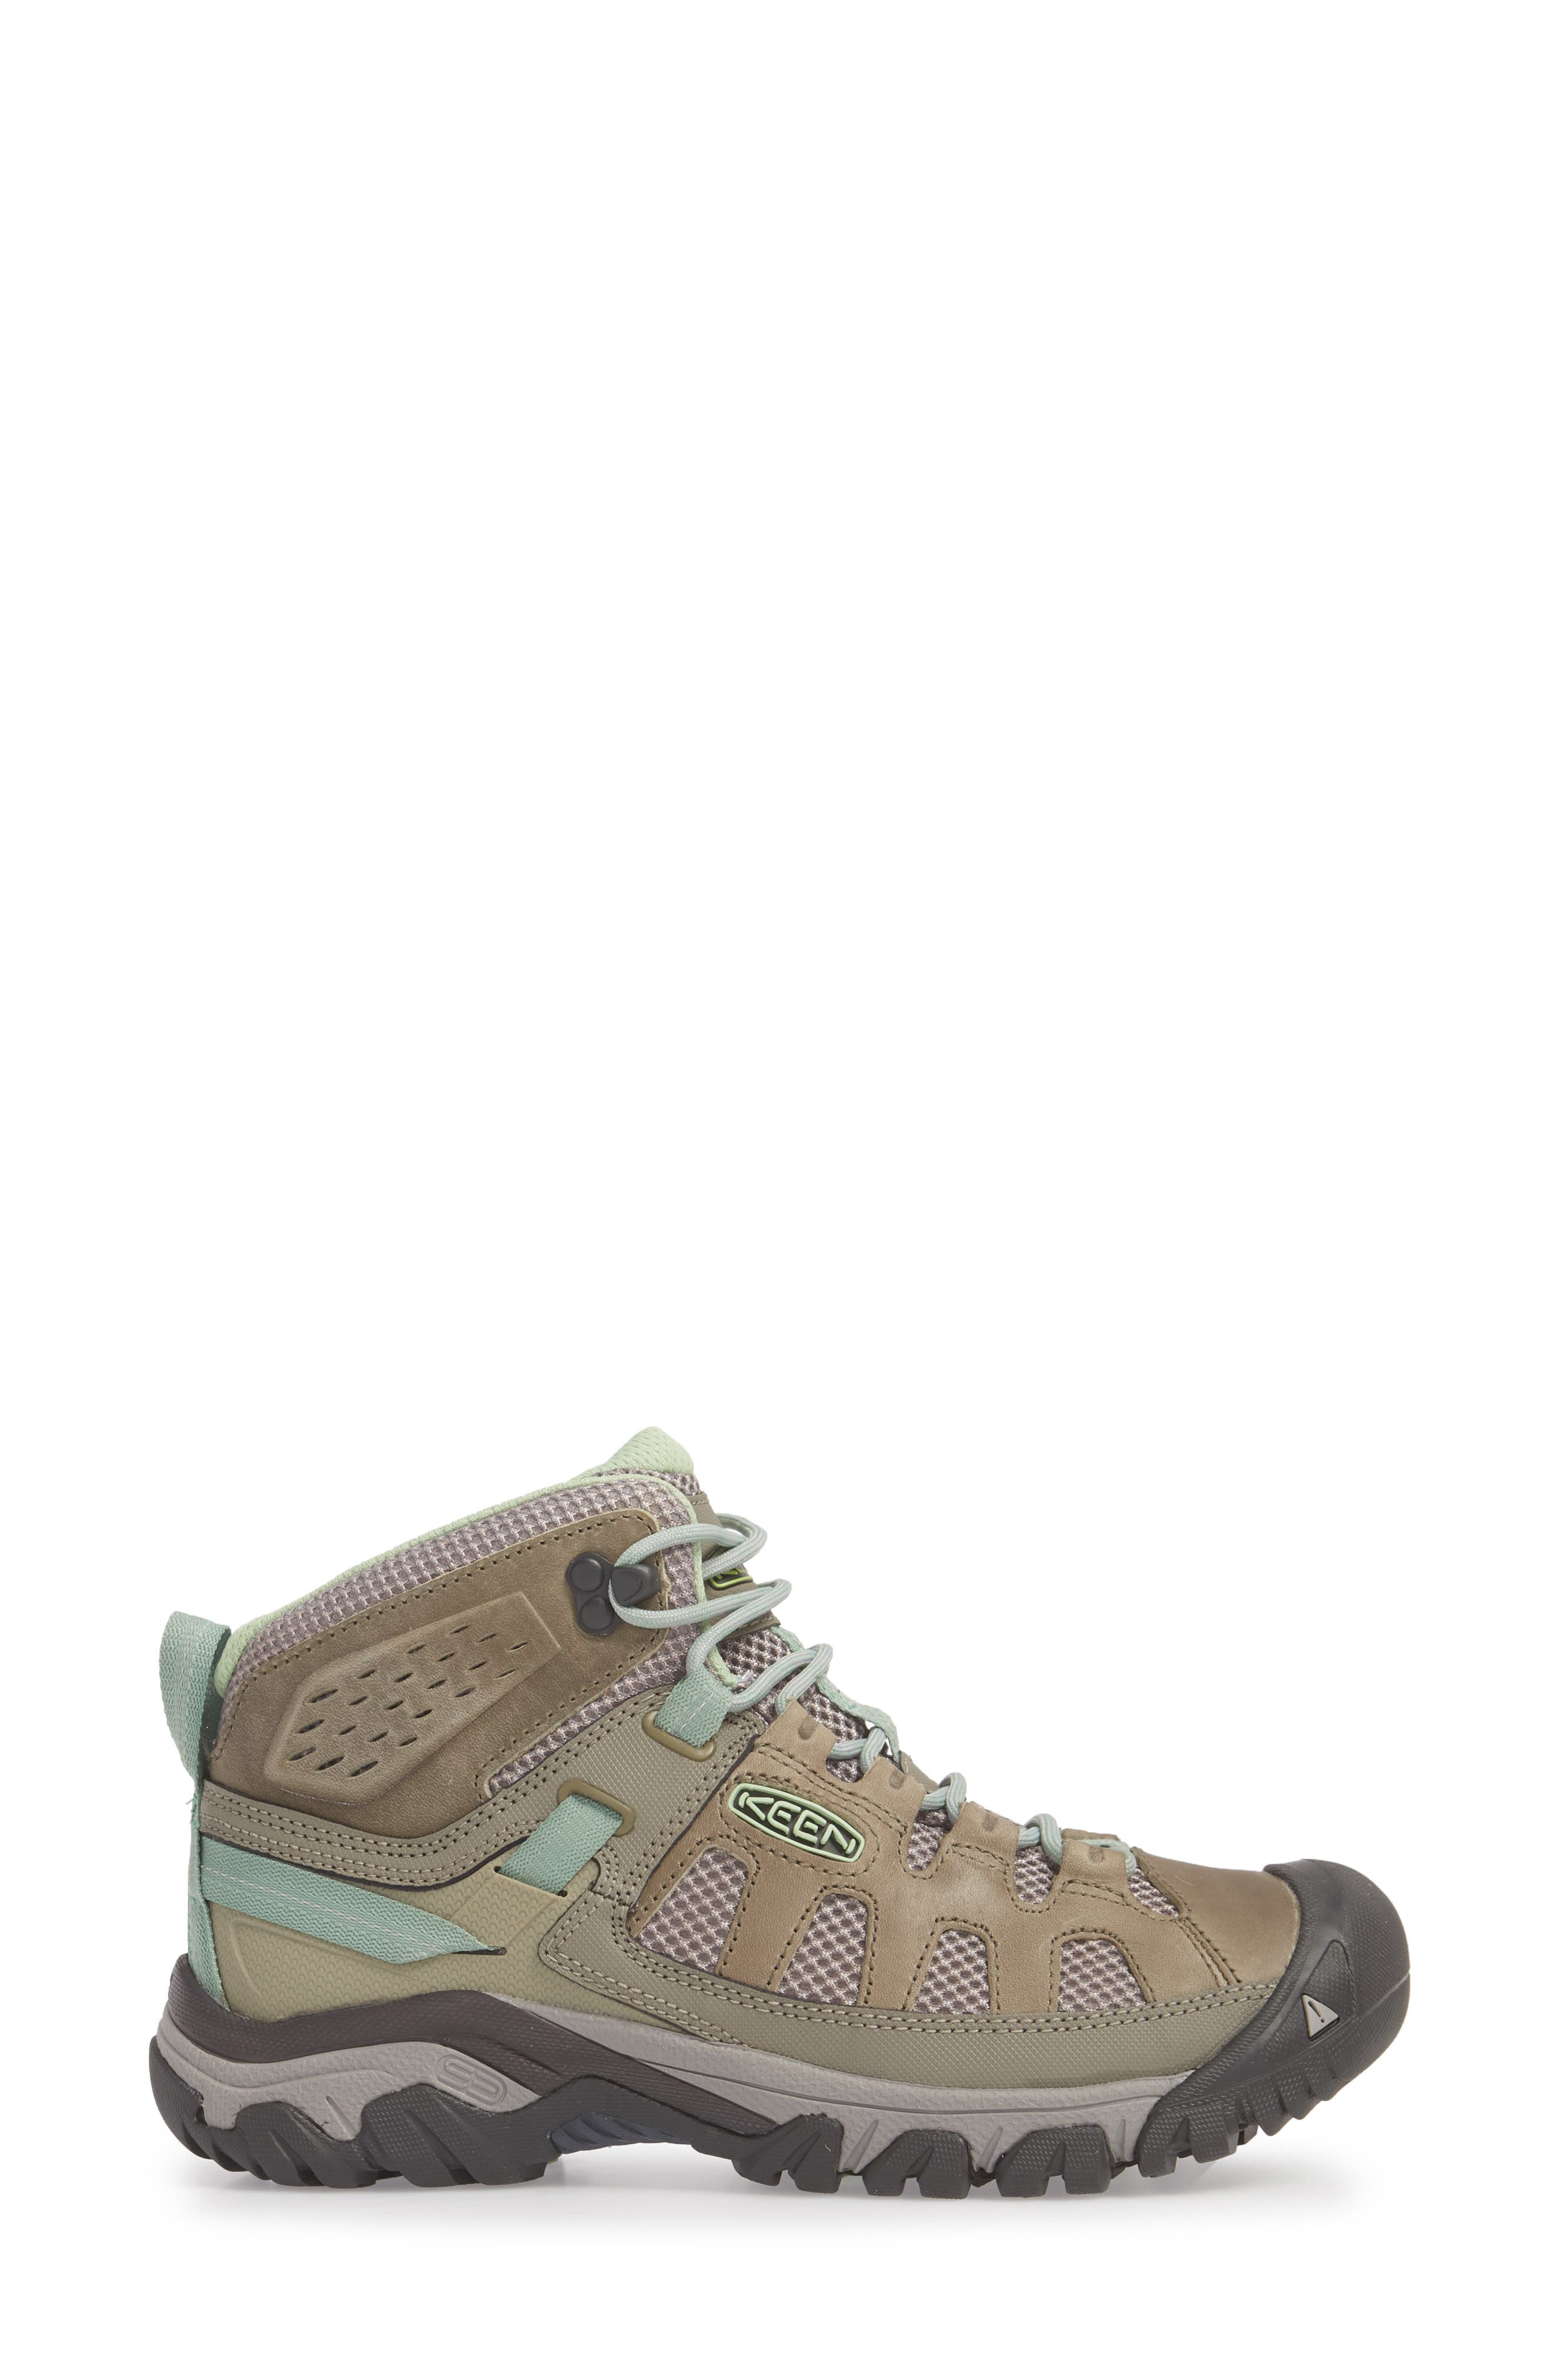 Targhee Vent Mid Hiking Shoe,                             Alternate thumbnail 3, color,                             Fumo/ Quiet Green Leather